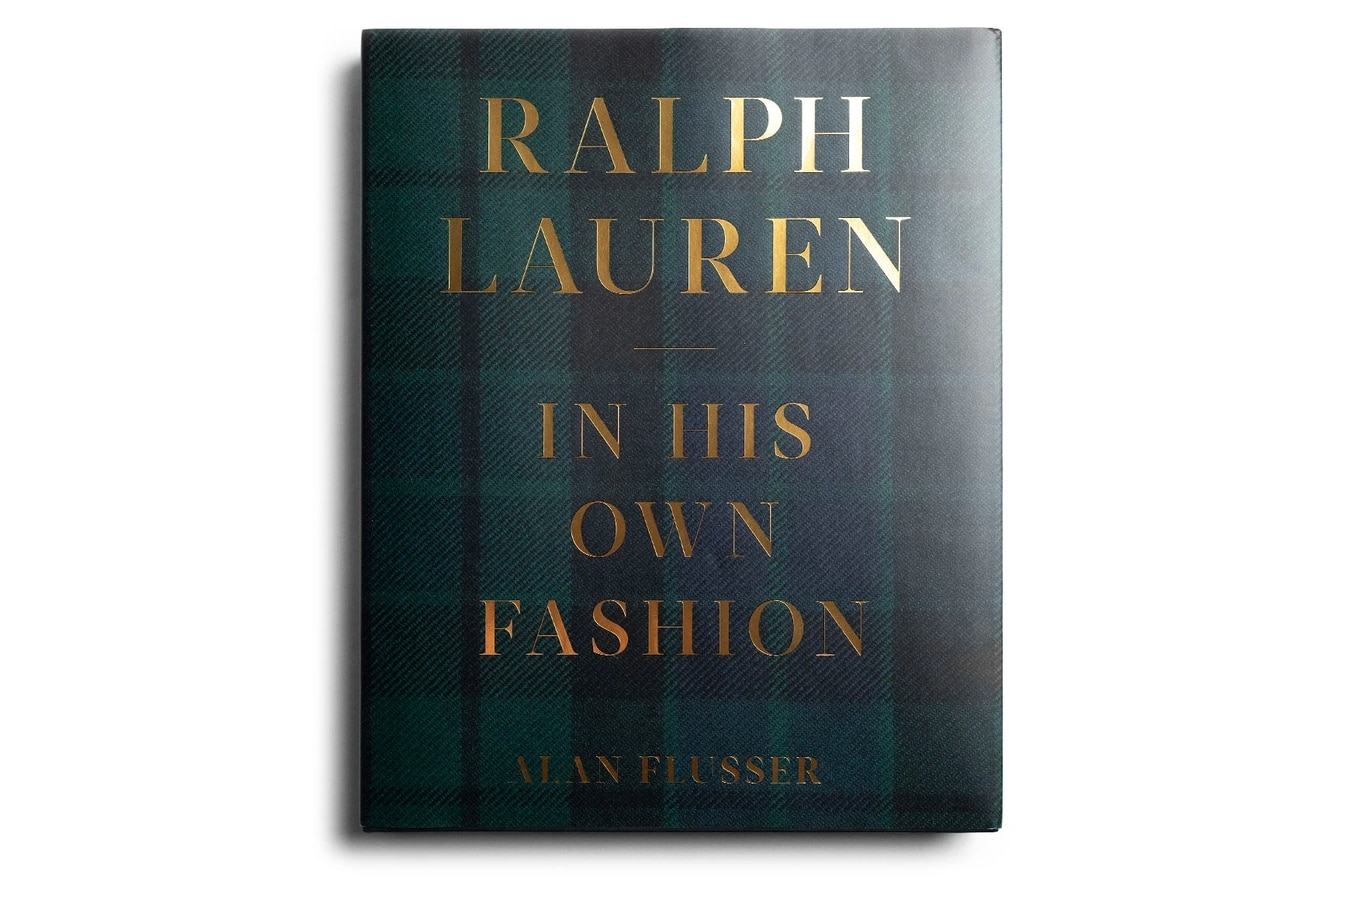 Uncrate supply ralph lauren in his own fashion